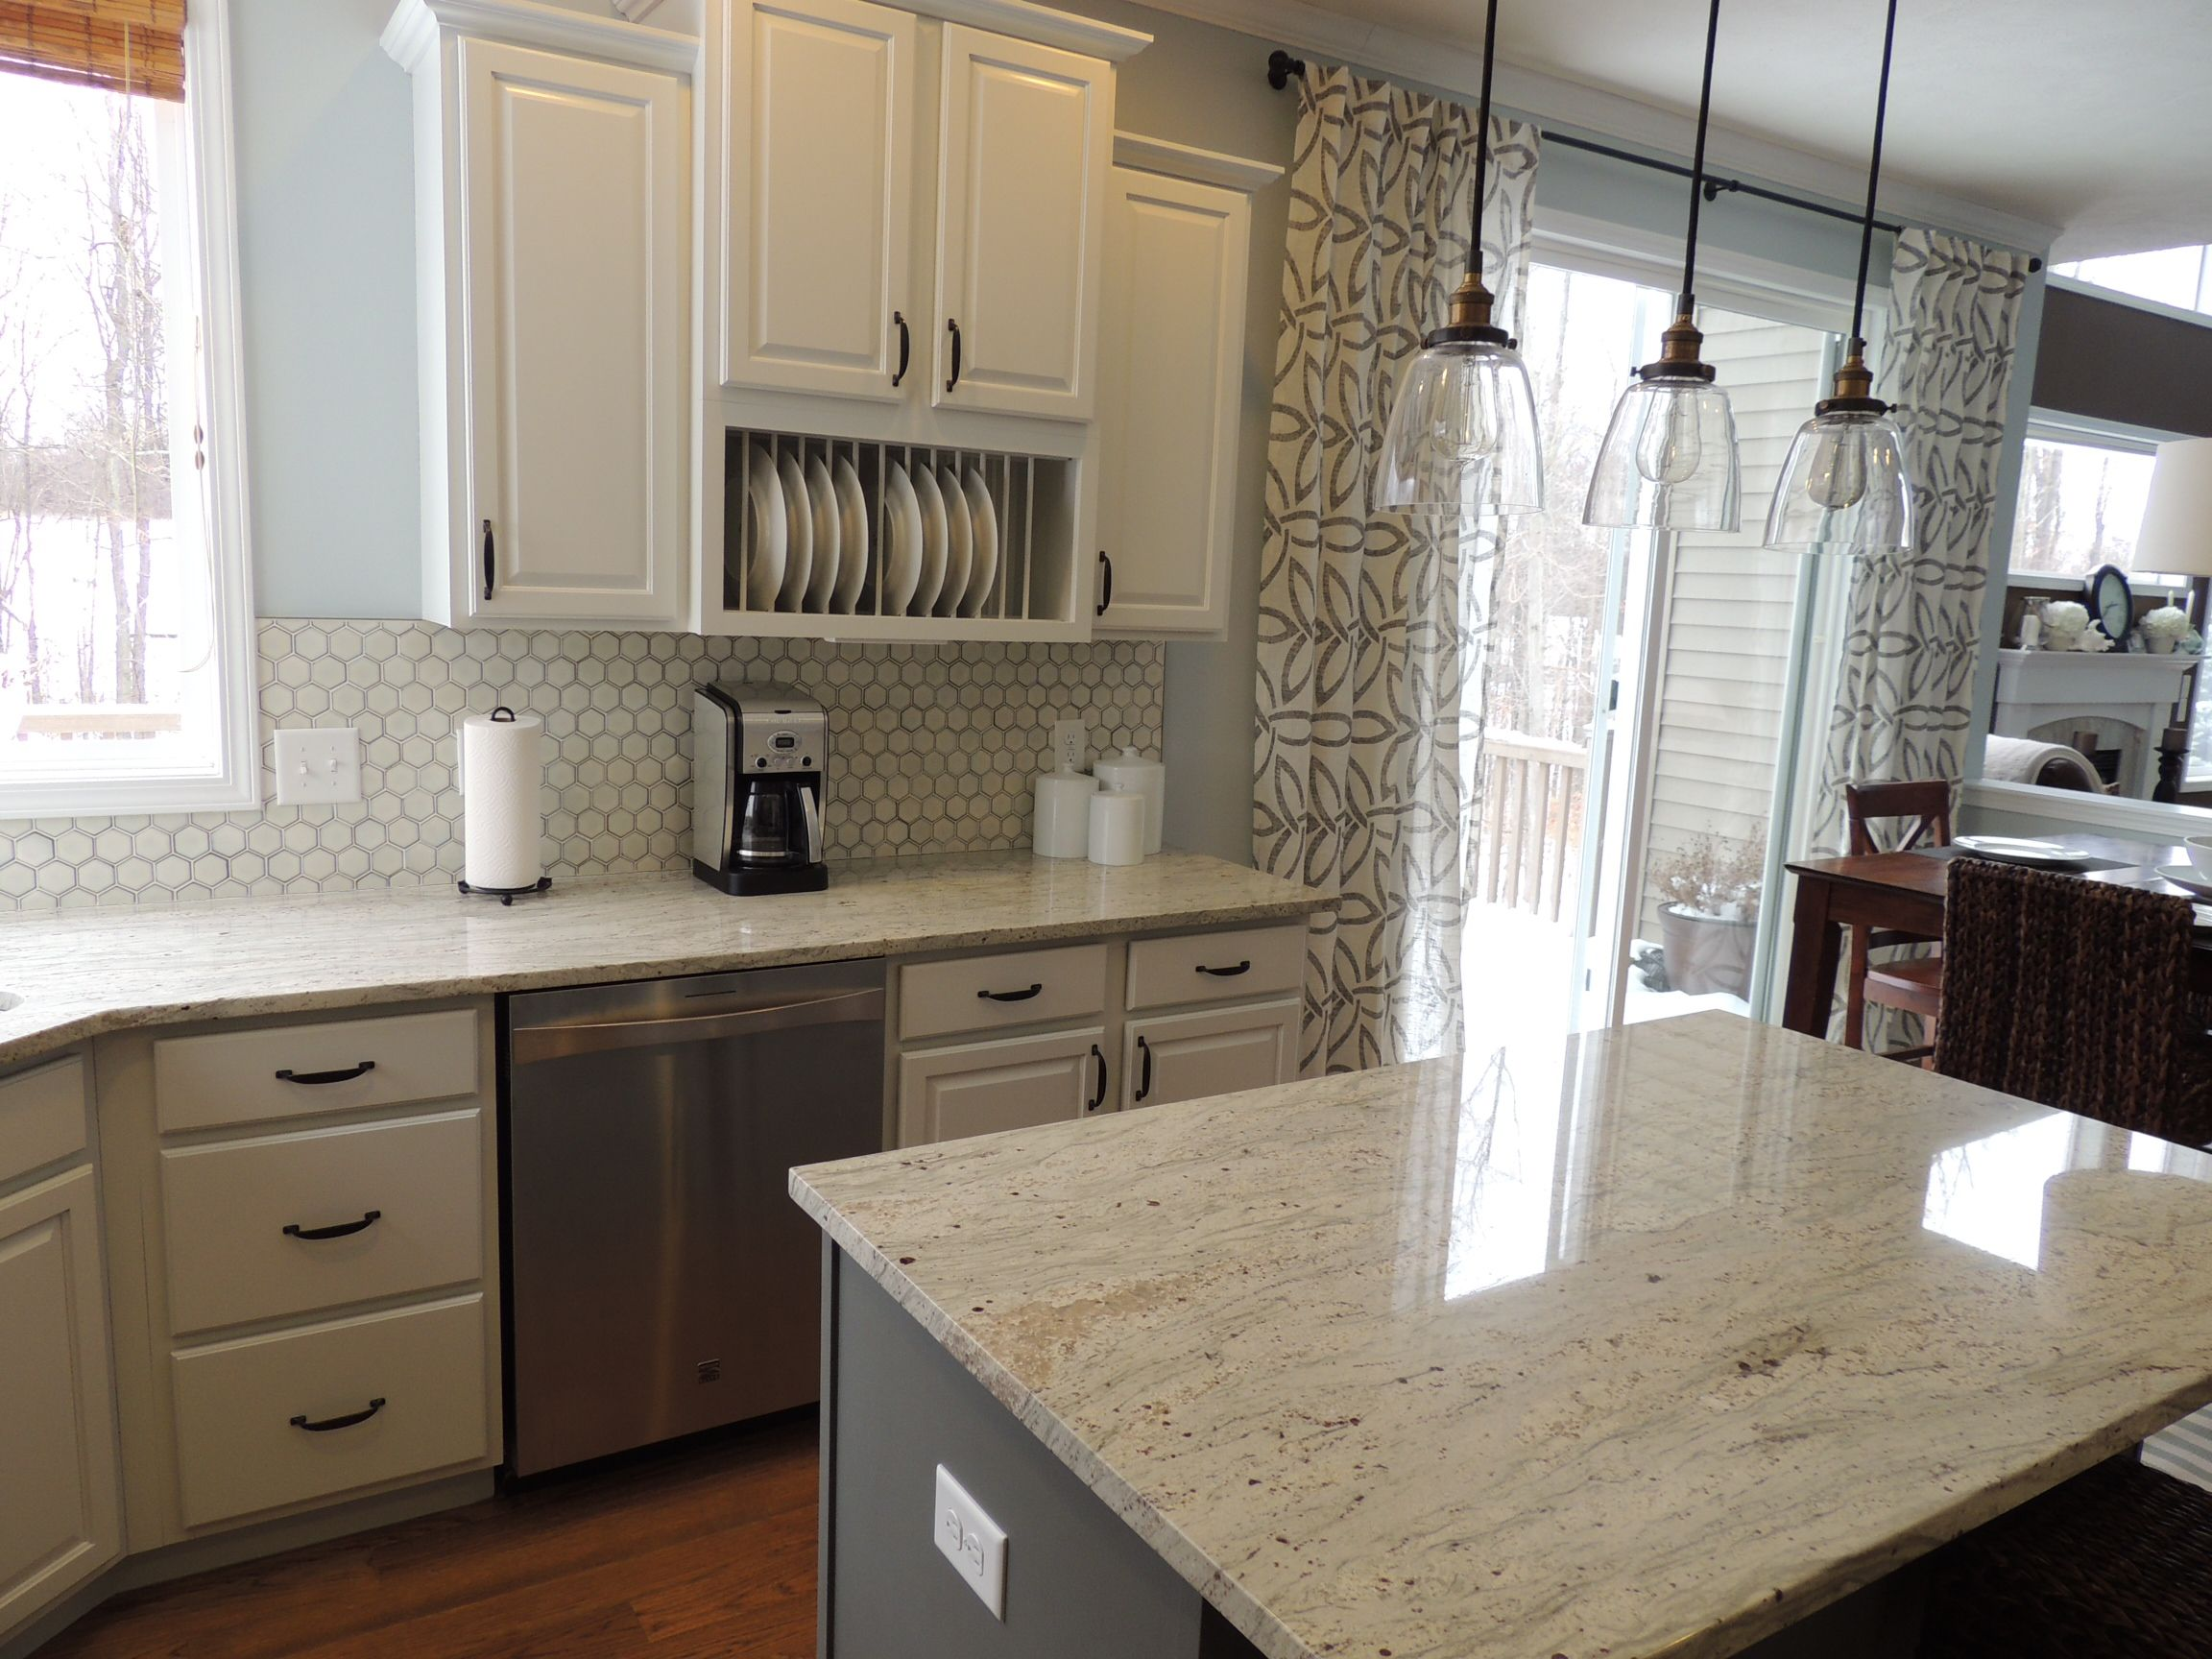 Rockford Kitchen Painted Cabinets River White Granite